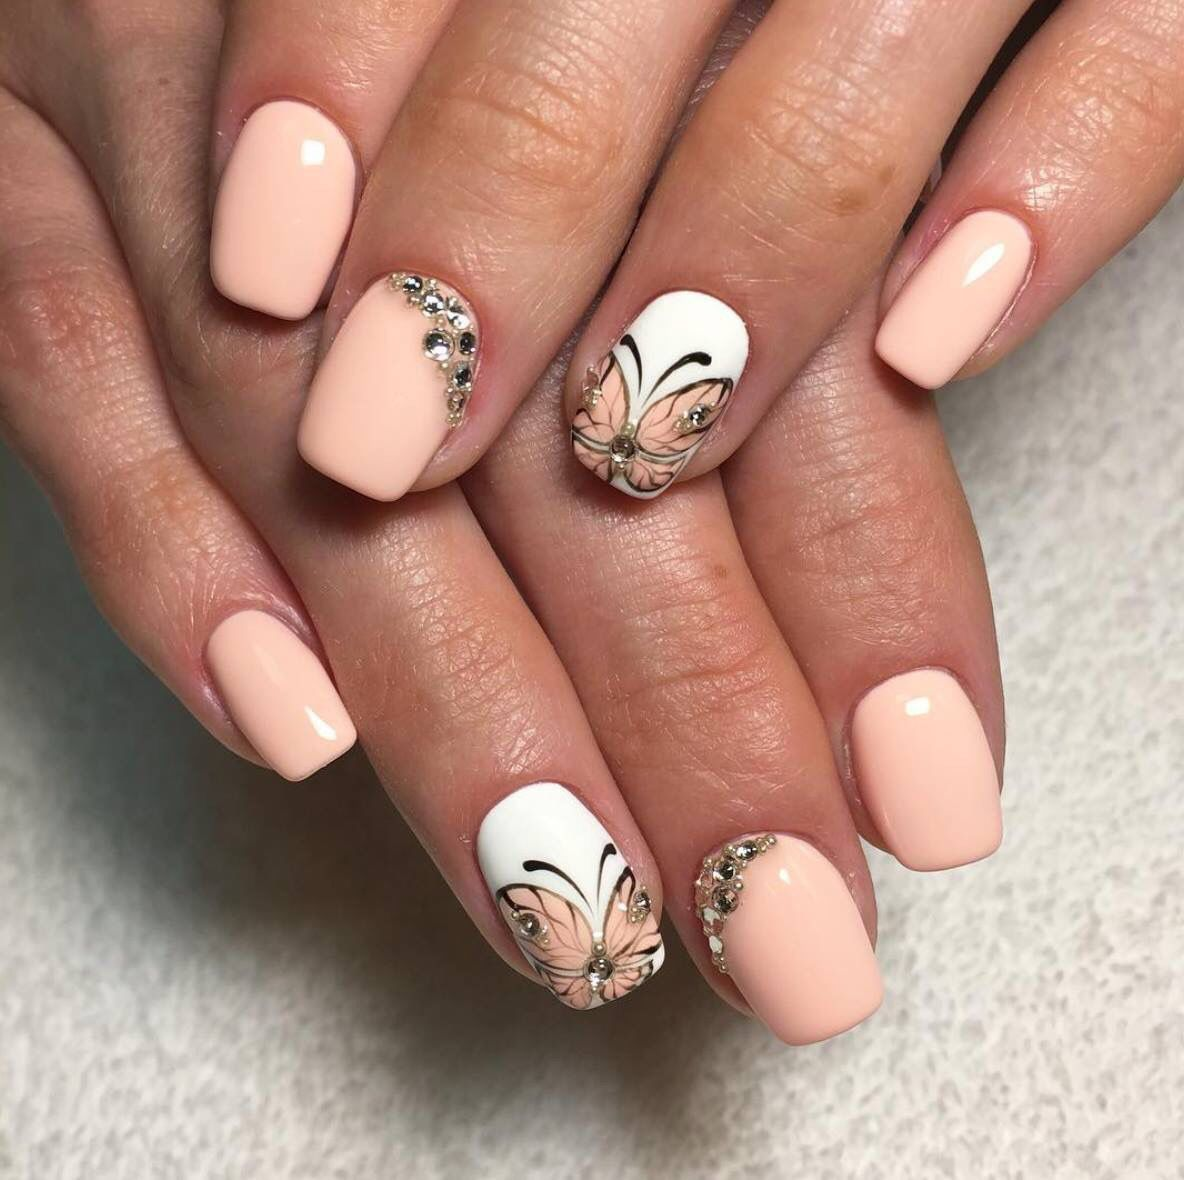 Explore White Manicure, Nail Ideas and more! - Pin By Iro Panagiotou On Nails Pinterest Manicure